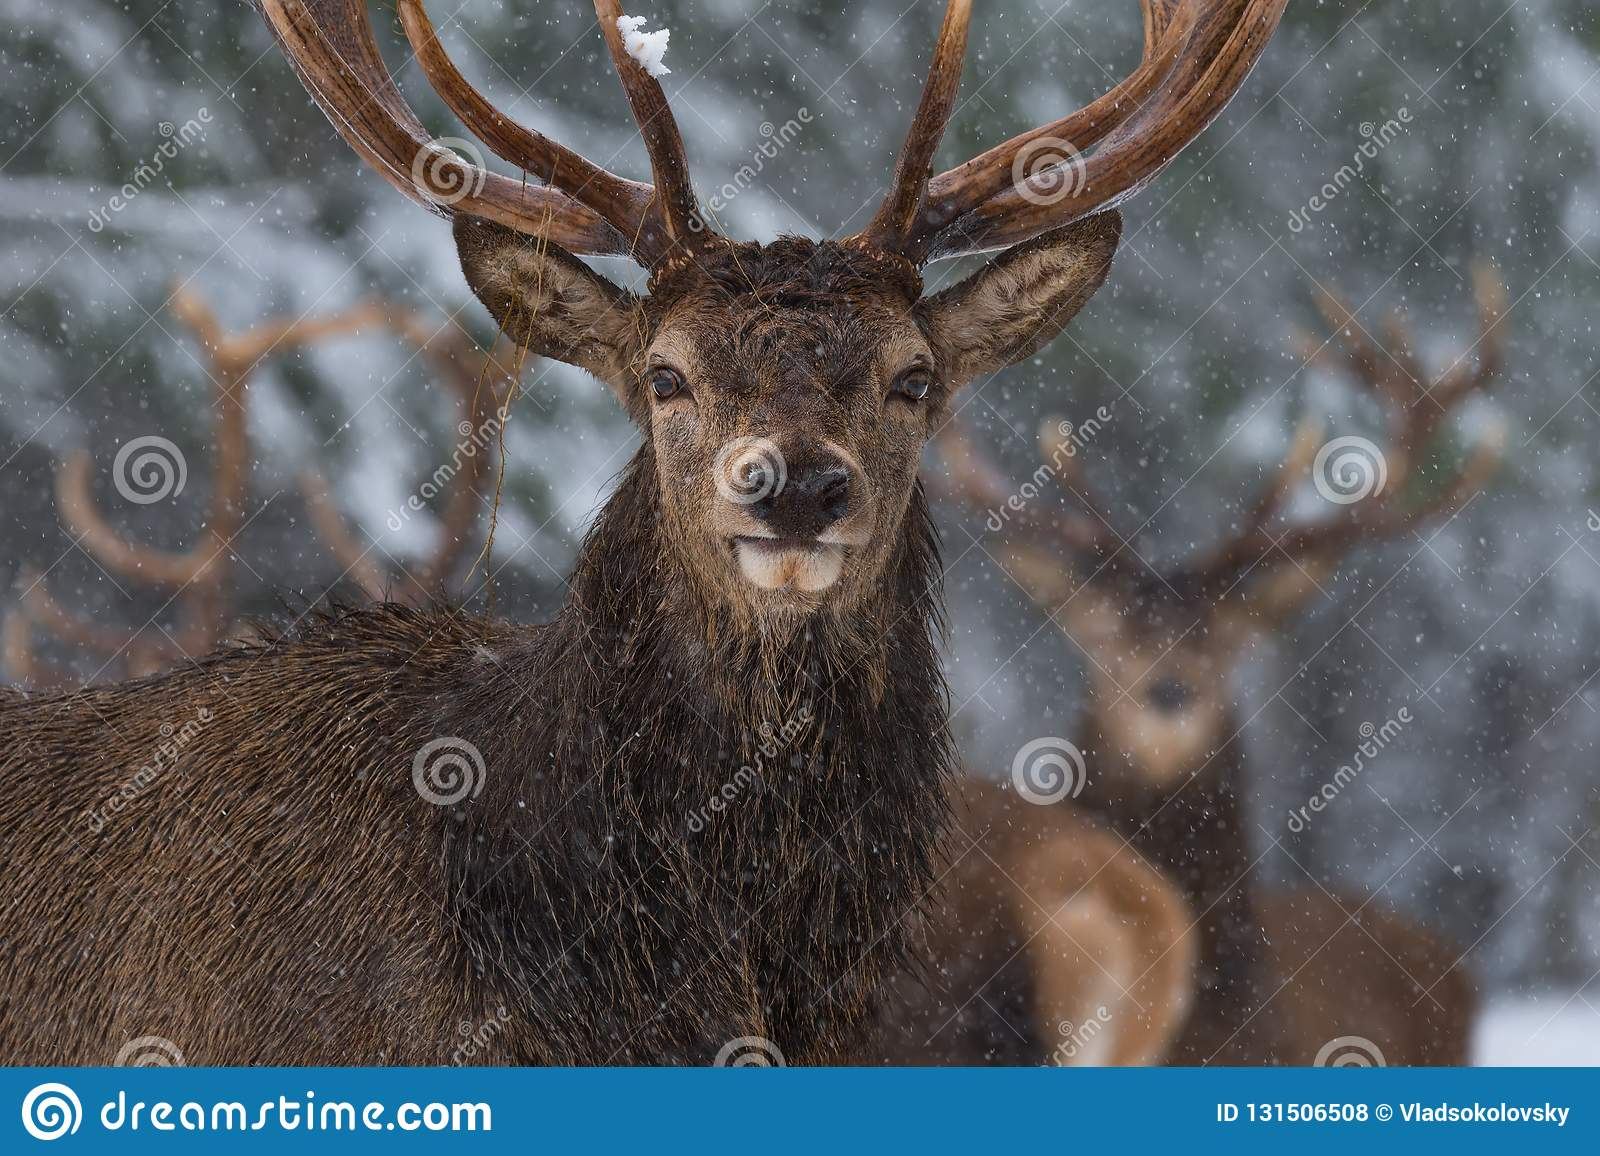 Christmas Wildlife Story.Portrait Of Lonely Stag Under Falling Snowflakes. Great Adult Red Deer With Careful Look Close-Up. Beloru